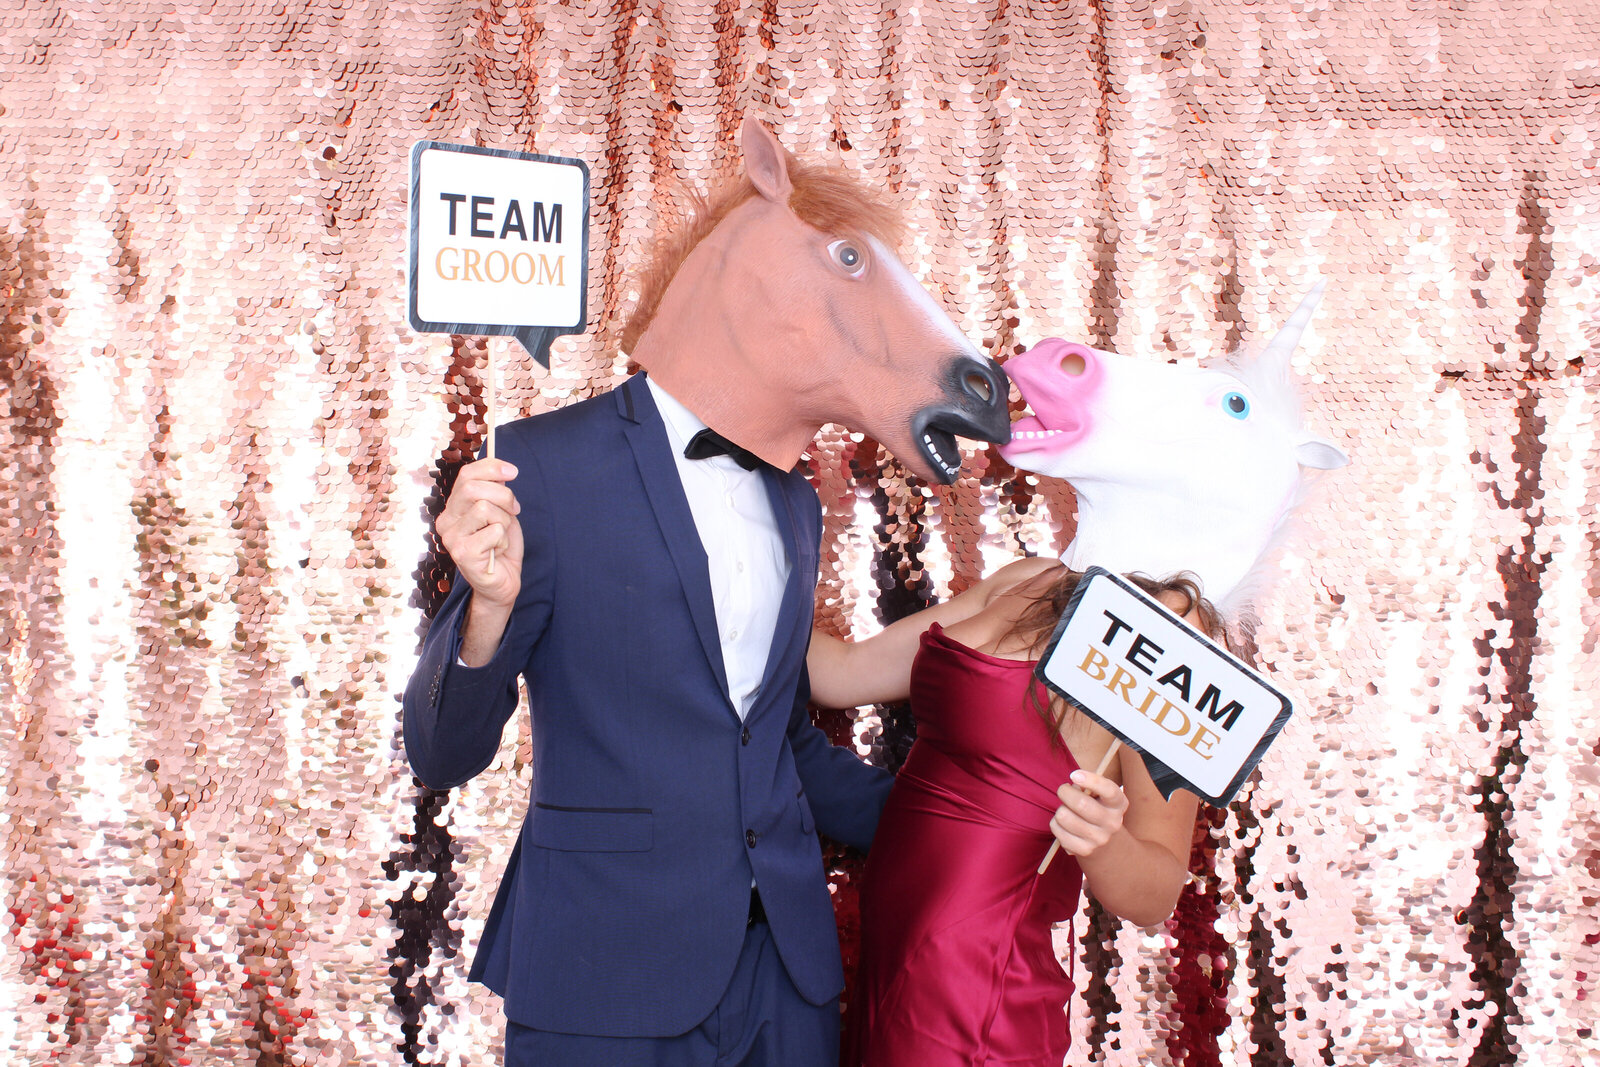 tampa-photo-booth-rental